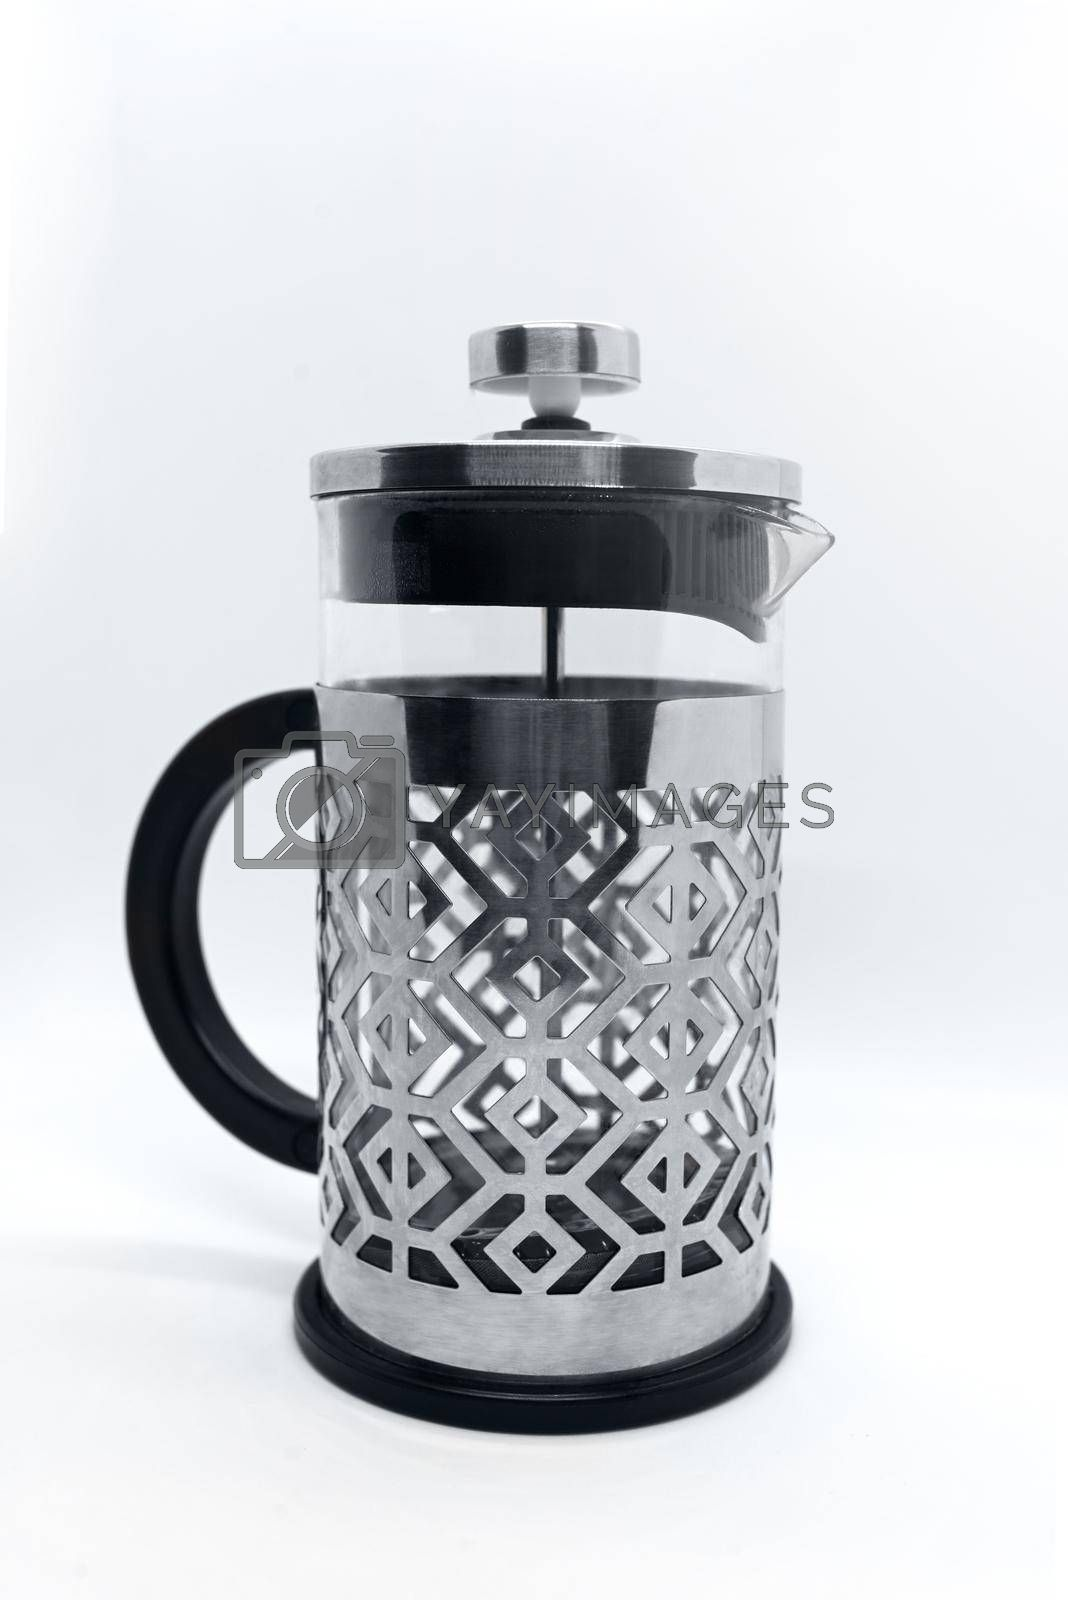 Clear Press Coffee Maker Isolated on White. French Press in Stainless Steel with Removable Borosilicate Glass Flask for Hot Cold Drinks. Modern Small Domestic Kitchenware. Vessel for Filtering Blend by Nickstock